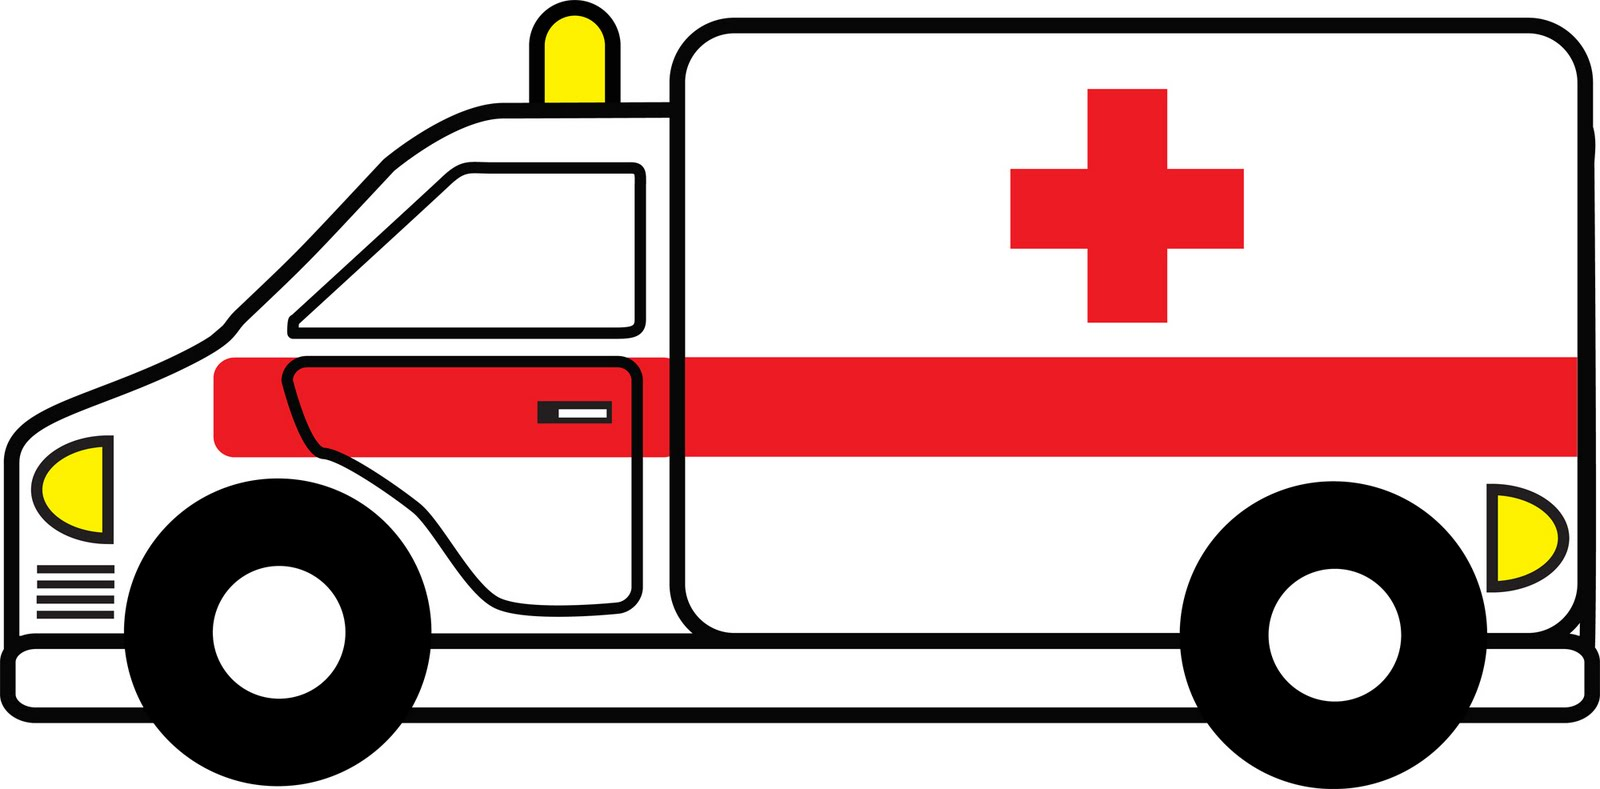 Fire Truck clipart powerpoint Panda Clipart Clipart ambulance%20clipart Ambulance